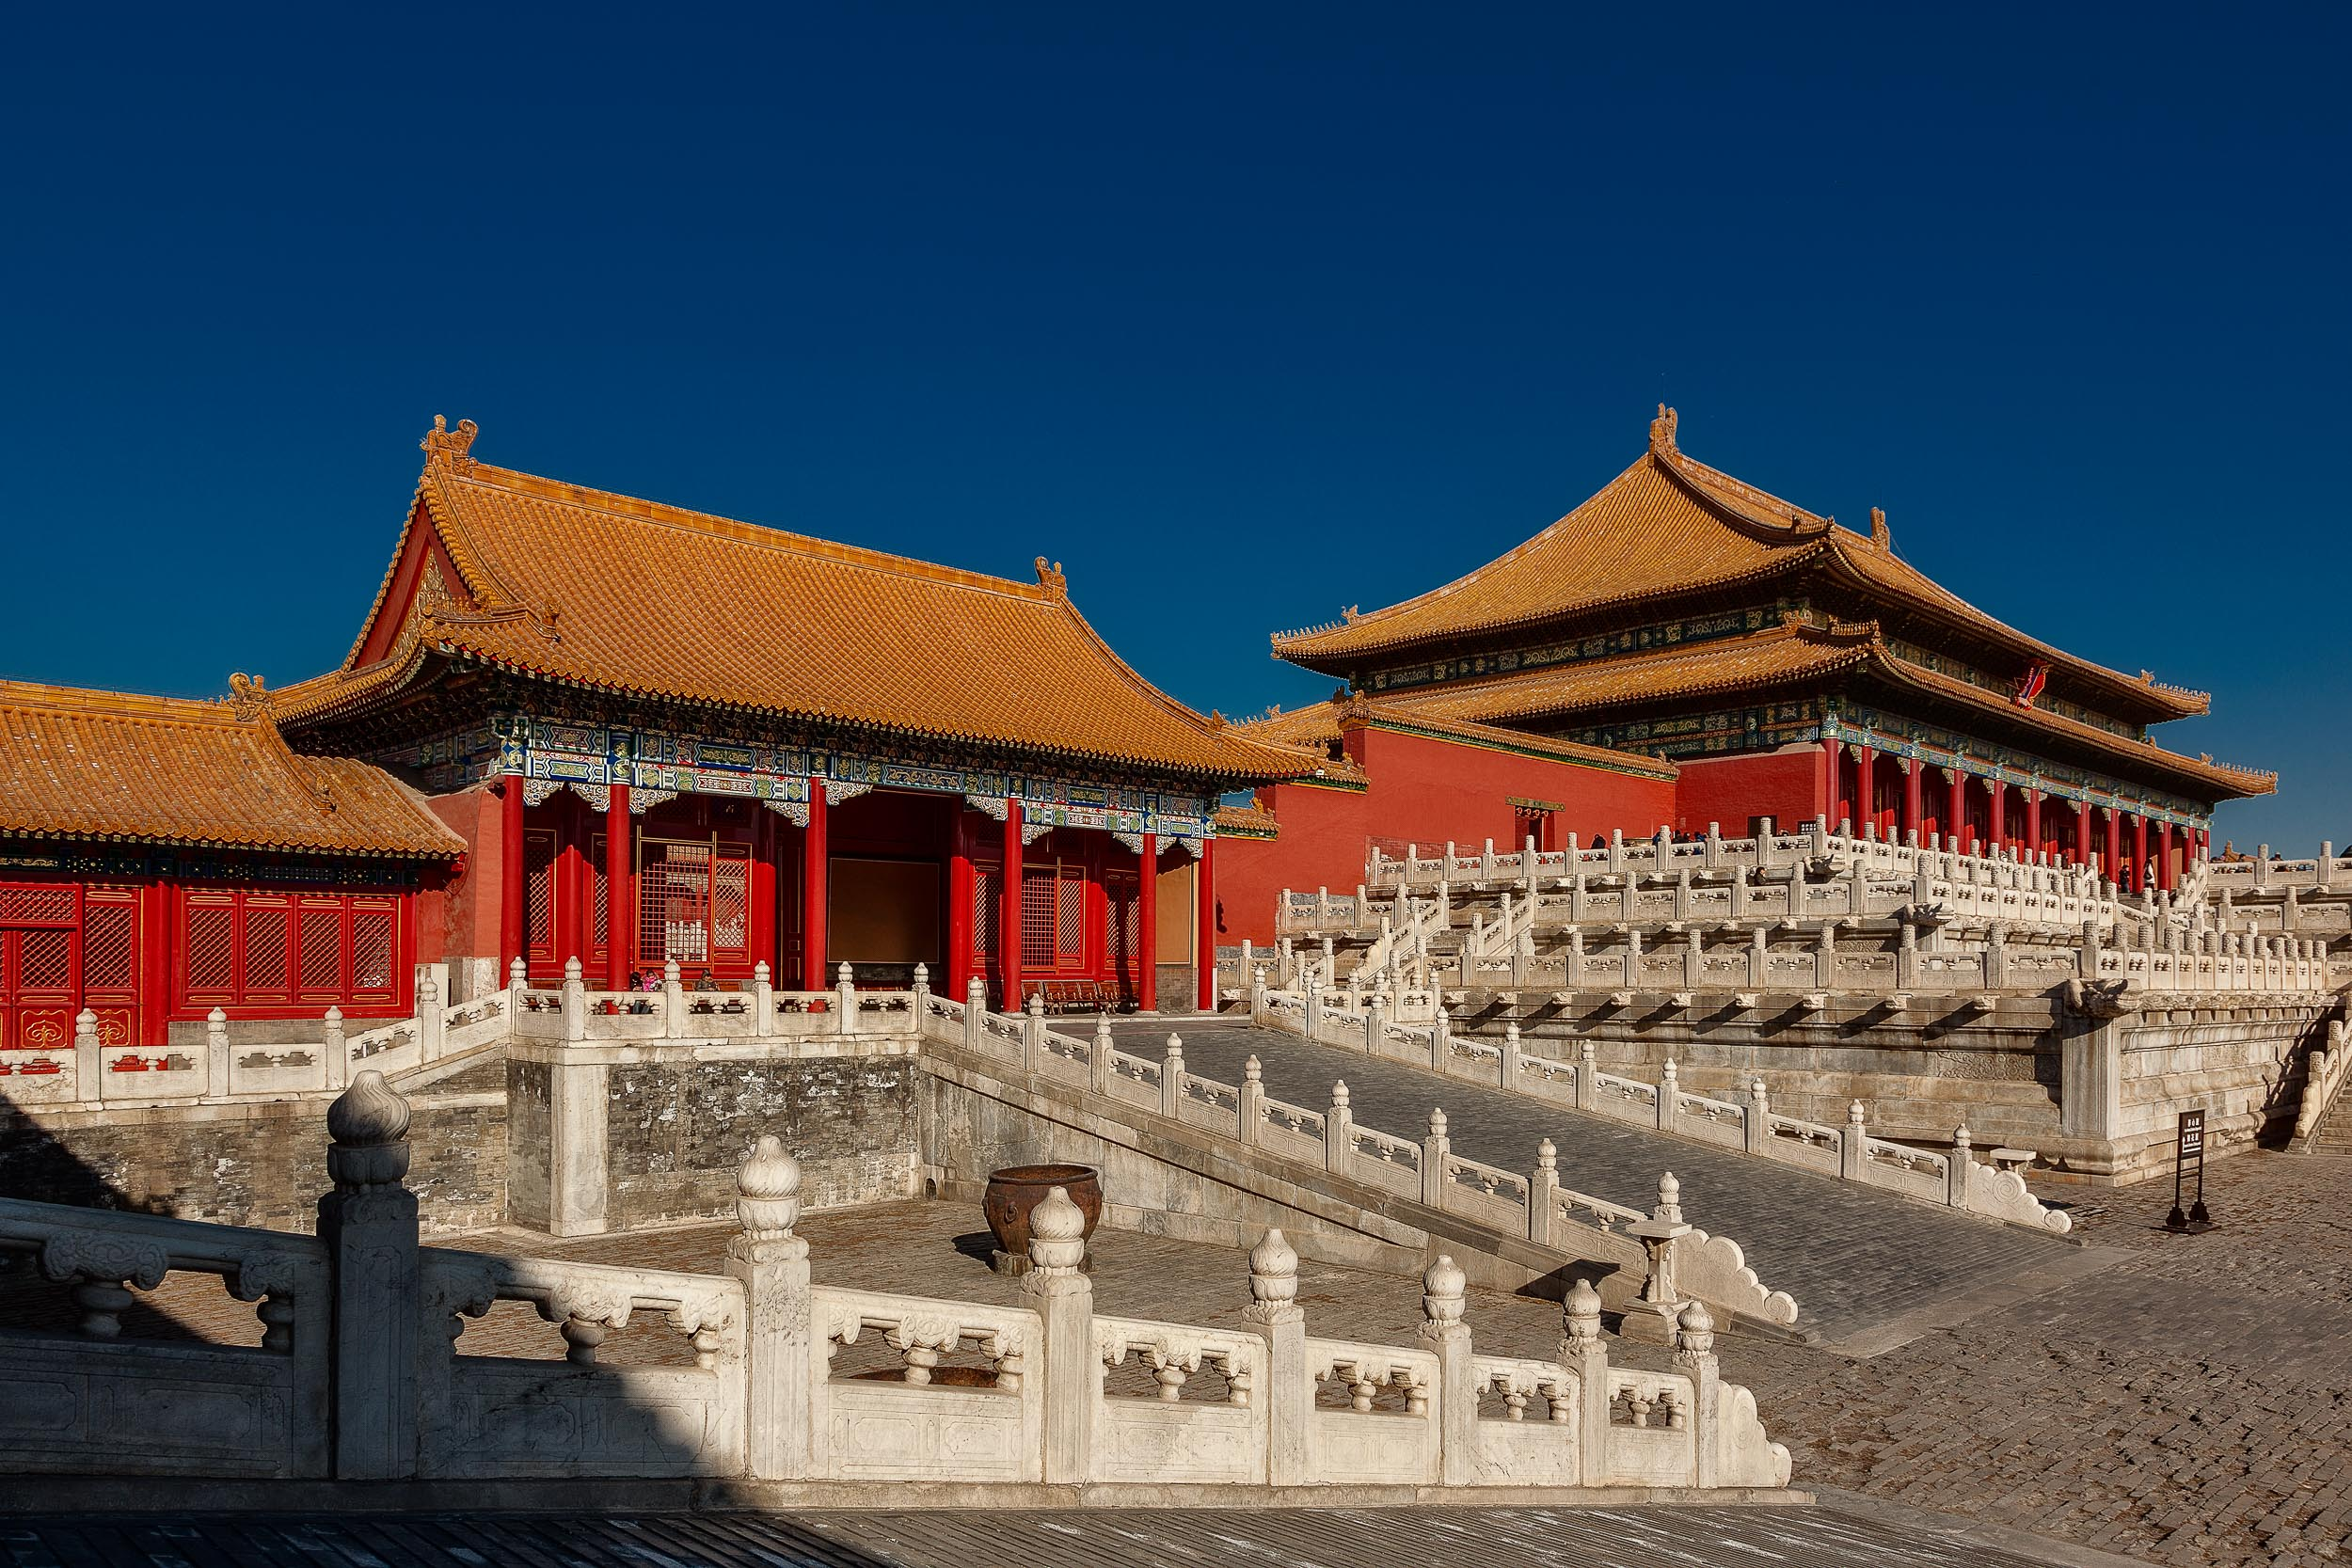 Red walls and orange tiled roofs, against a deep blue sky, on a spectacular winter's day in the    Forbidden City    in    Beijing, China   . One of many sites China tourism offers visitors.